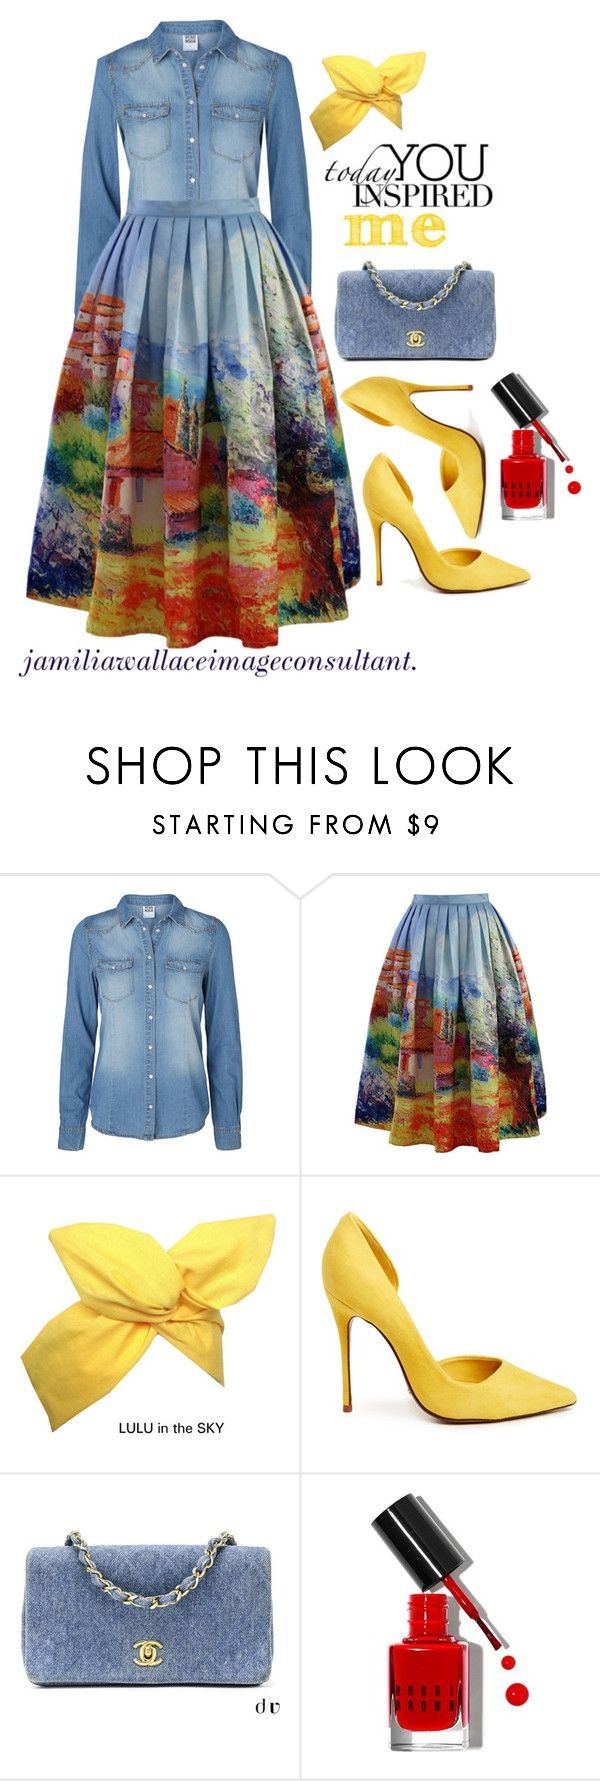 """Ideal Image"" by jamilia-wallace ❤ liked on Polyvore featuring Vero Moda, Chicwish, Schutz, Chanel and Bobbi Brown Cosmetics"